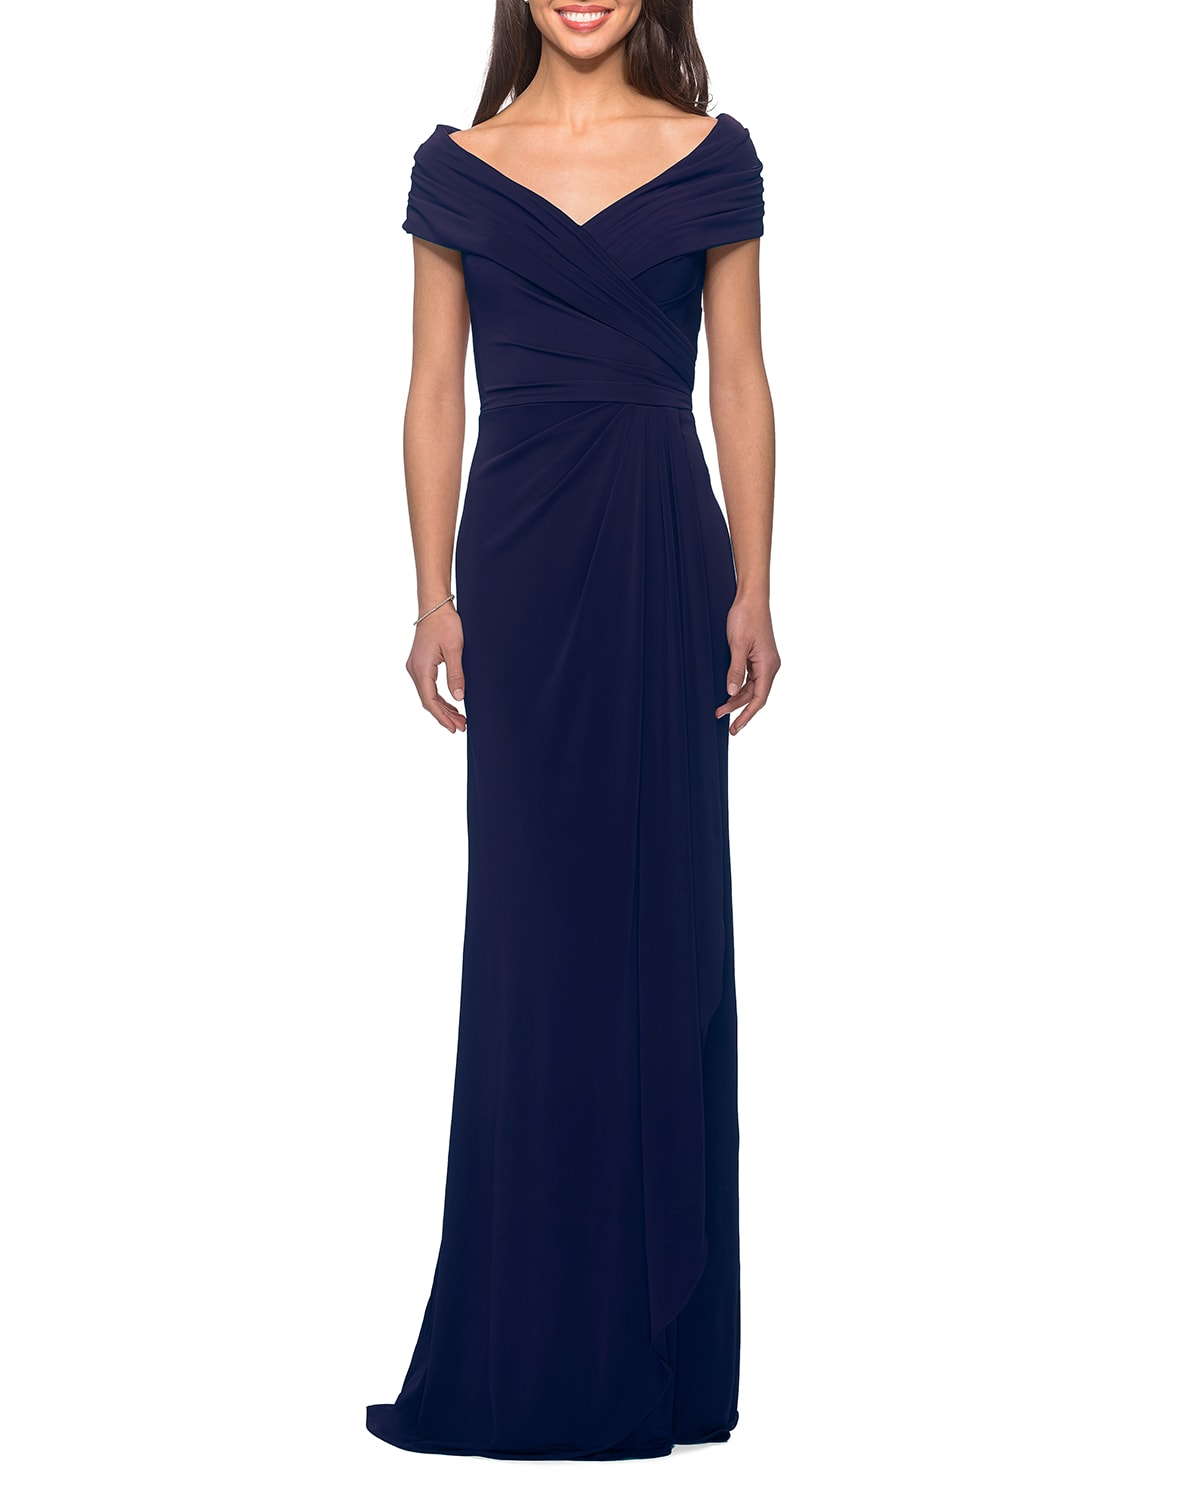 Short-Sleeve Ruched Jersey Gown Dress